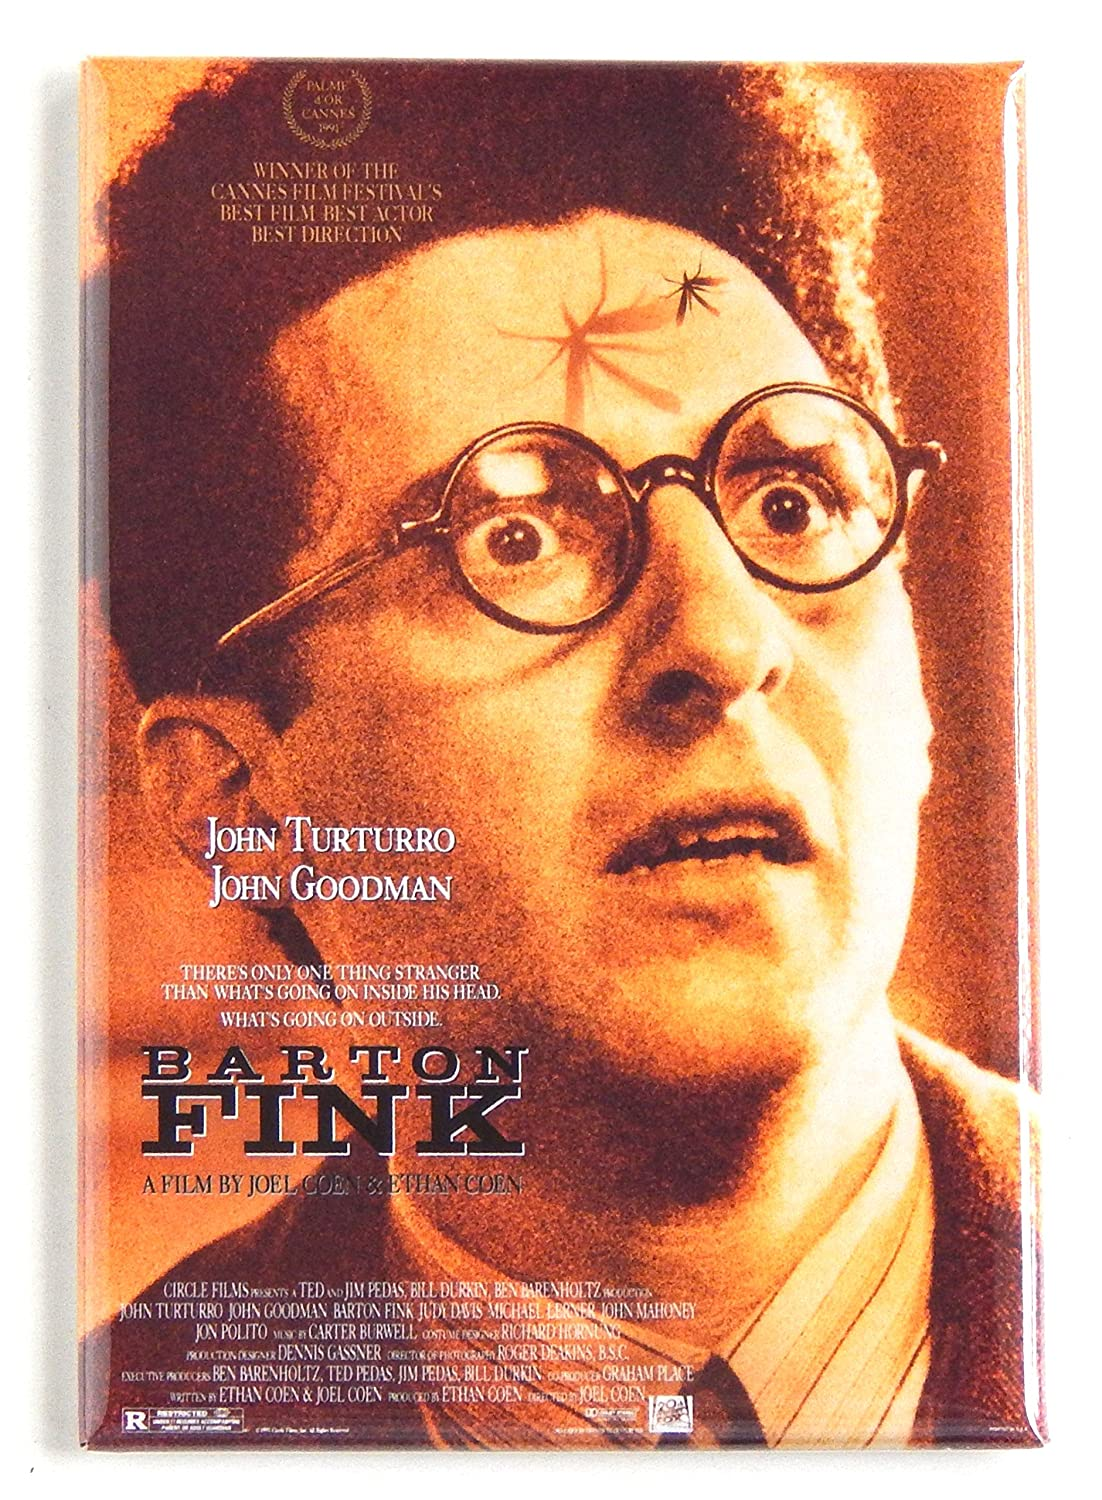 Barton Fink Movie Poster Fridge Magnet (2.5 x 3.5 inches)